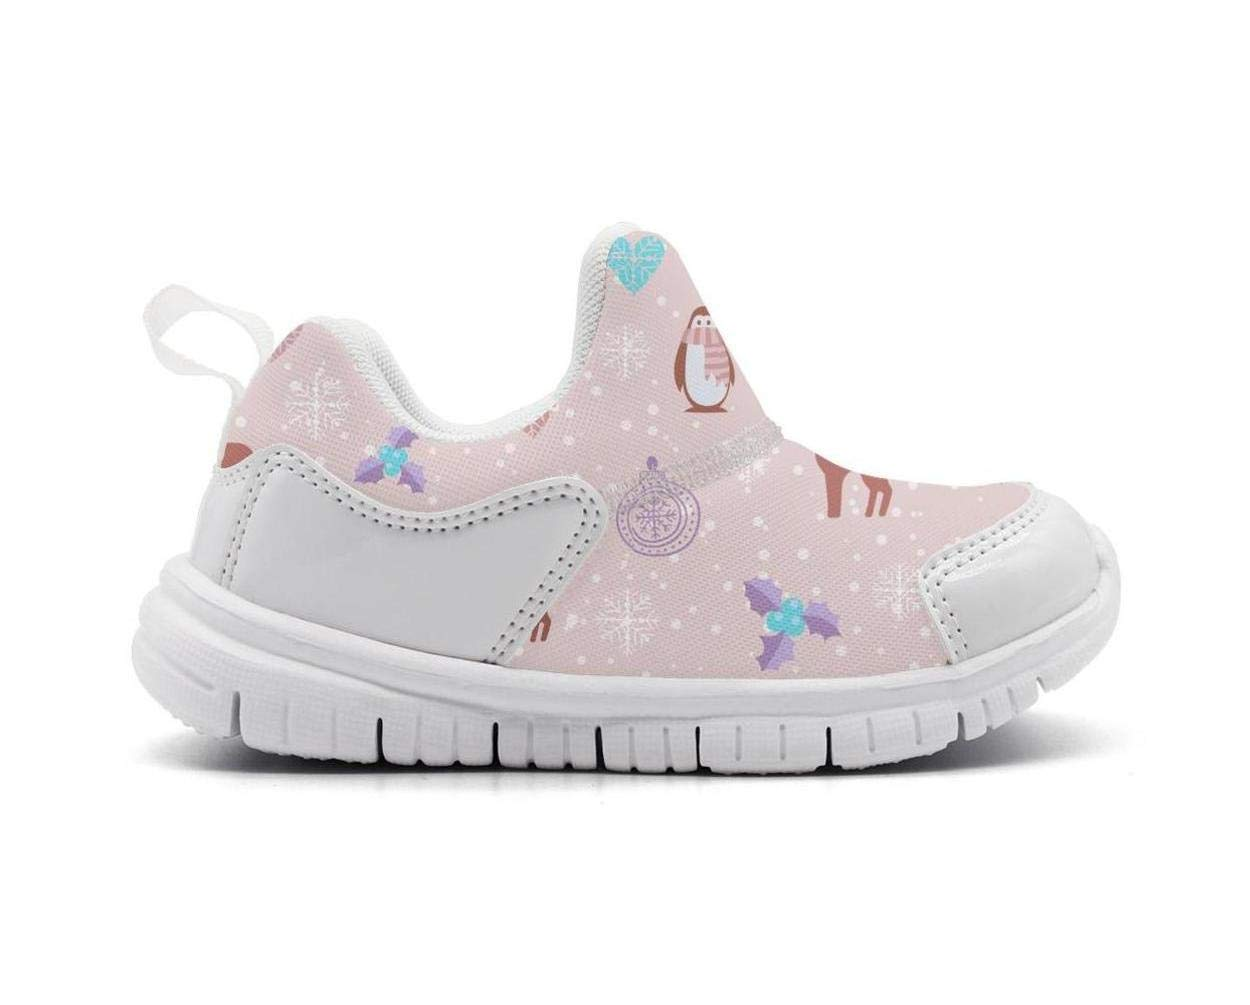 ONEYUAN Children Cute Penguin Elephant Rabbit Kid Casual Lightweight Sport Shoes Sneakers Walking Athletic Shoes